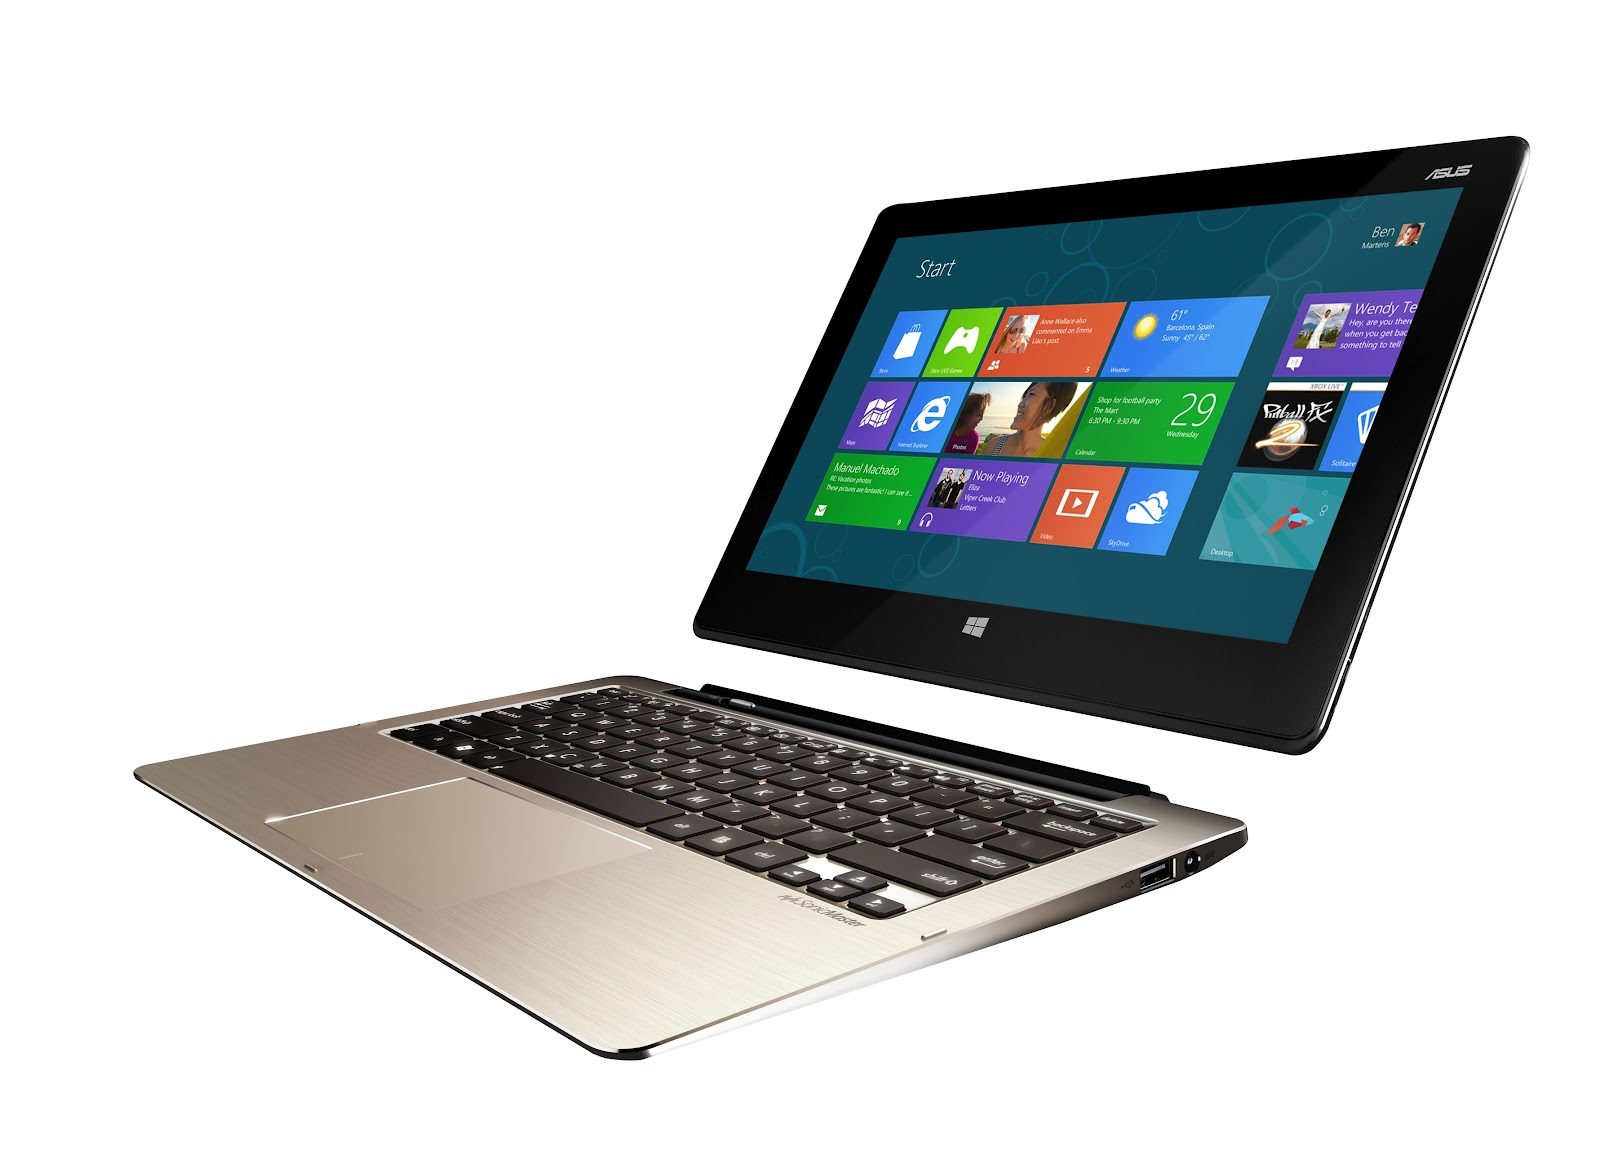 asus tablet windows 8 manual